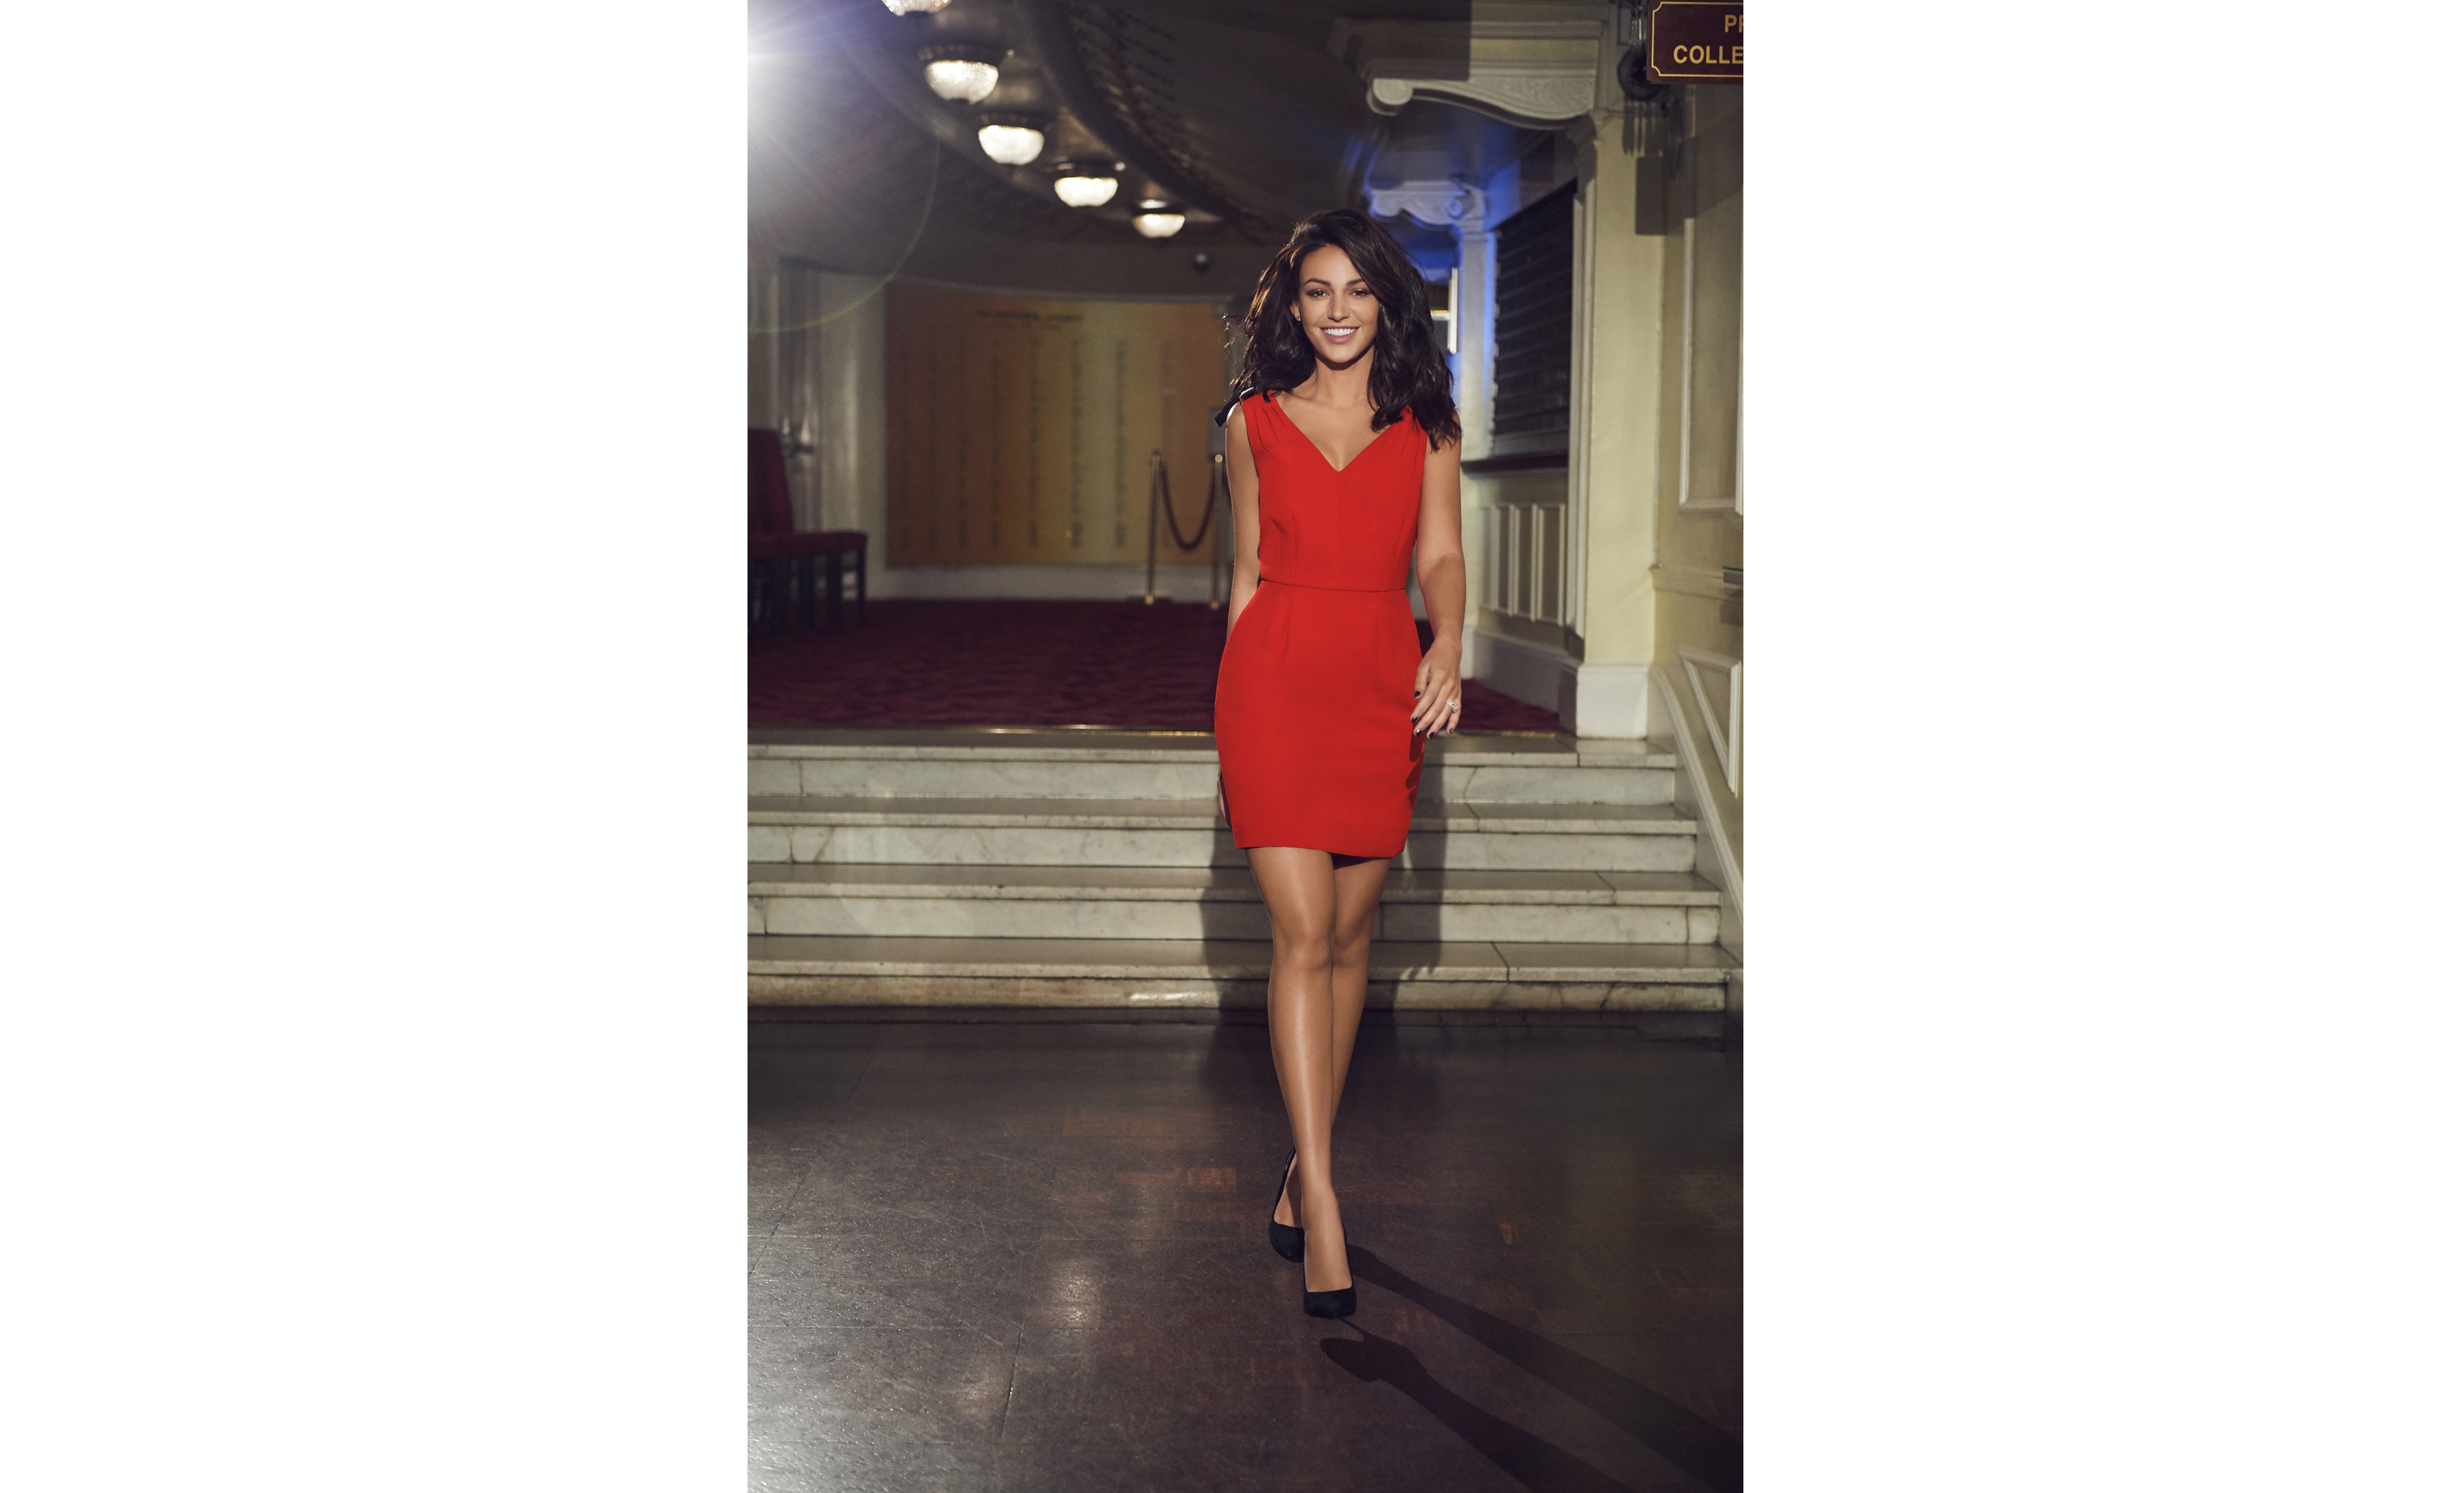 actress michelle keegan wears pieces from her fashion collection for very.co.uk